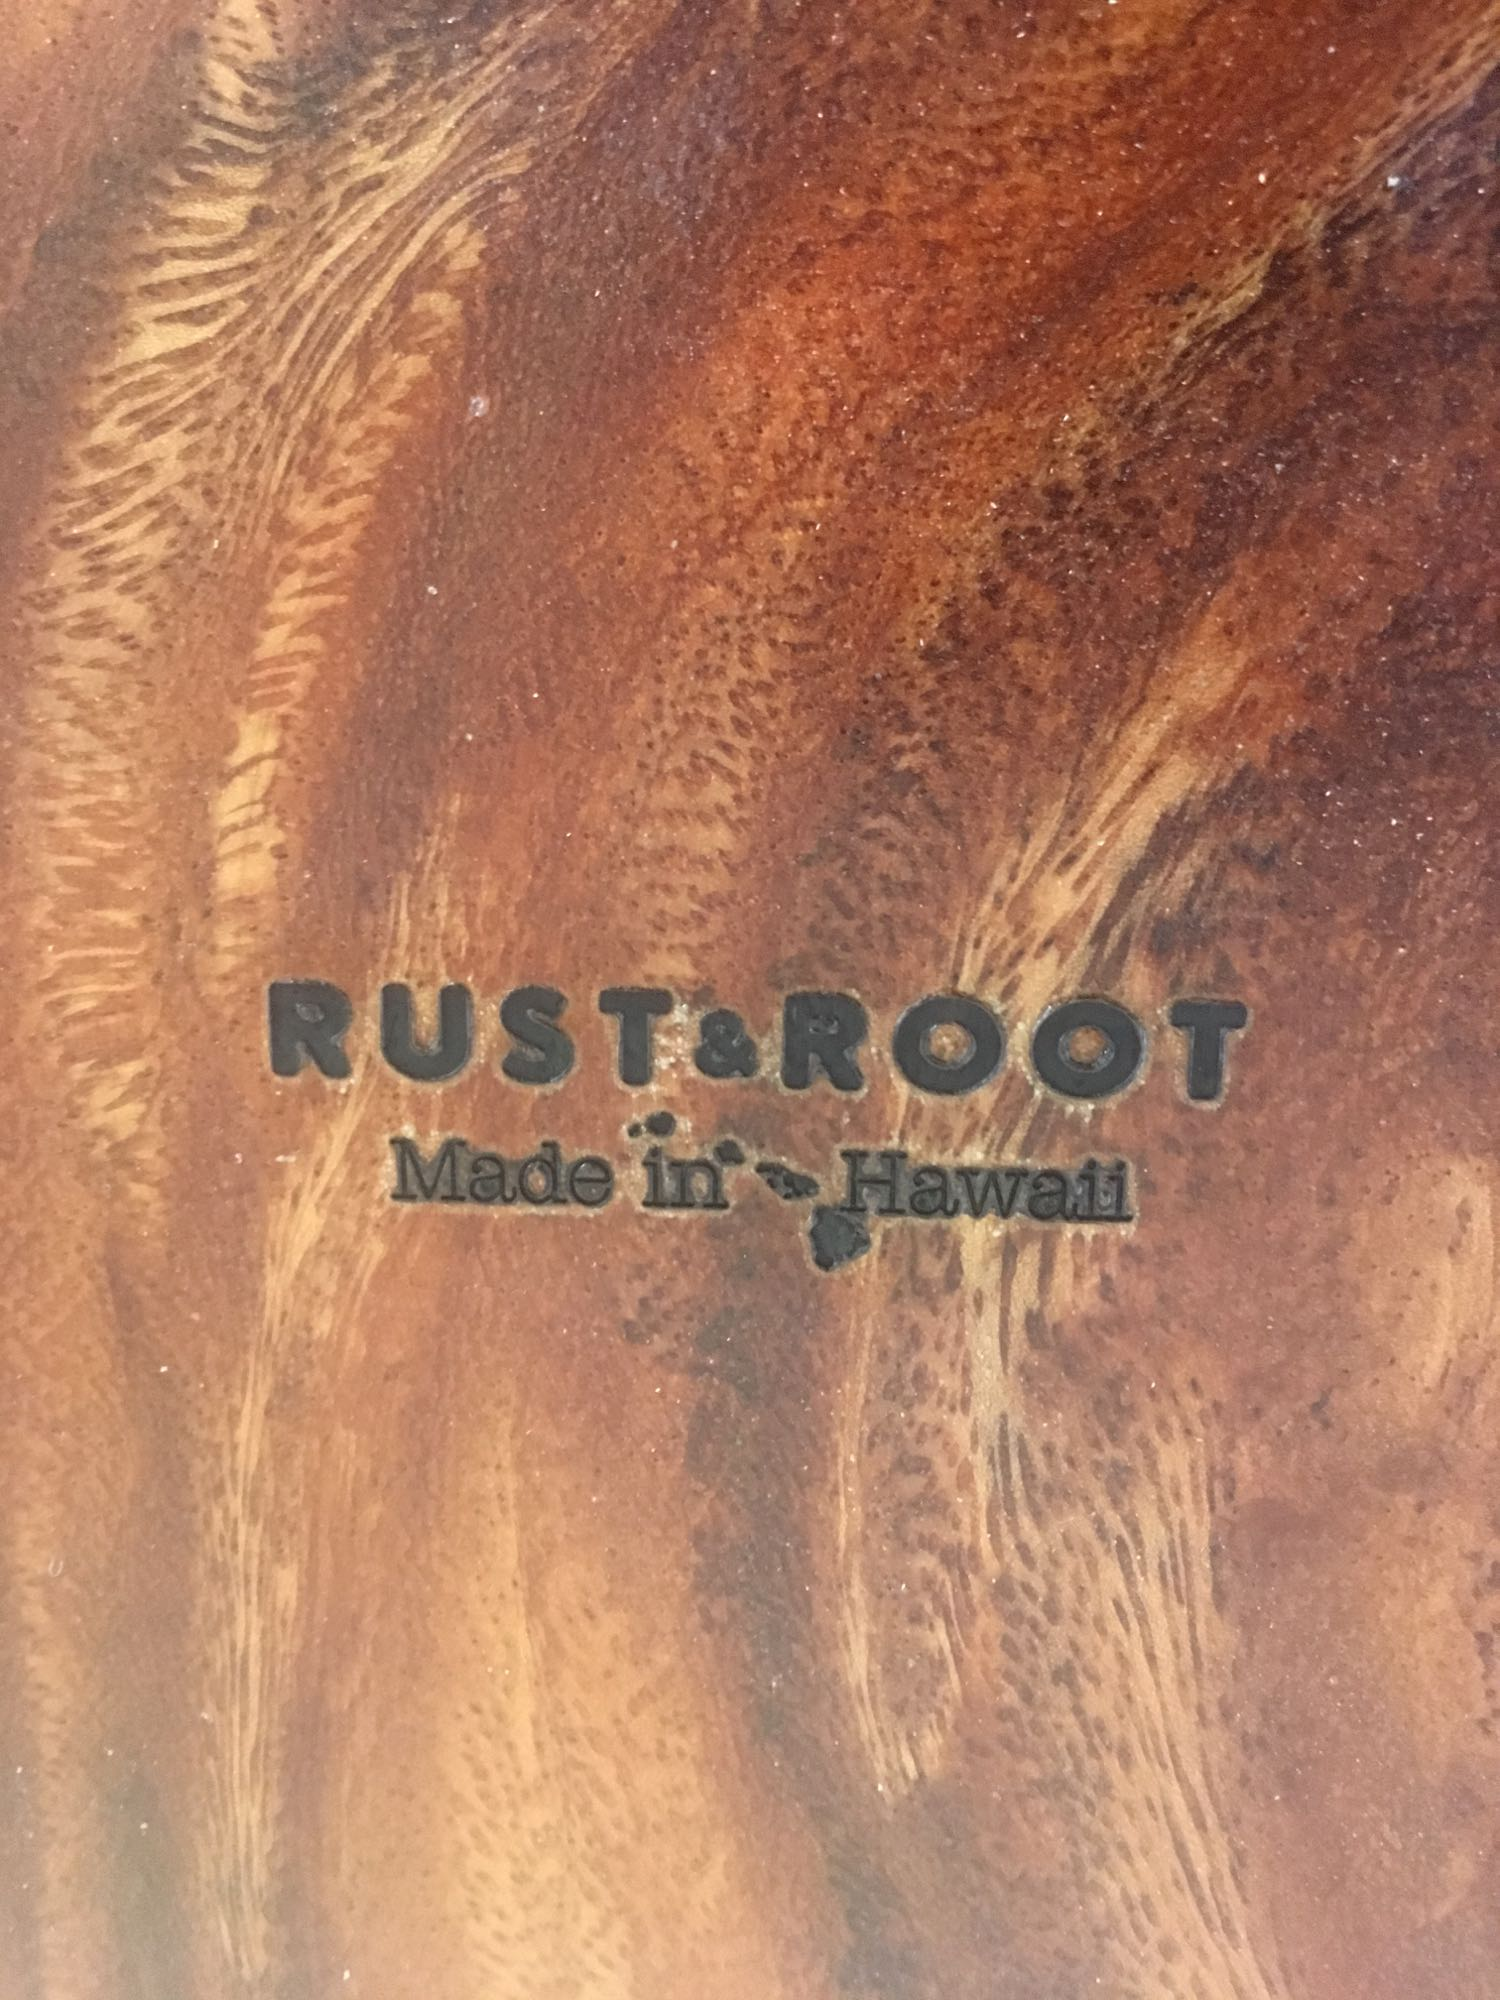 Rust & Root logo branded on the bottom!